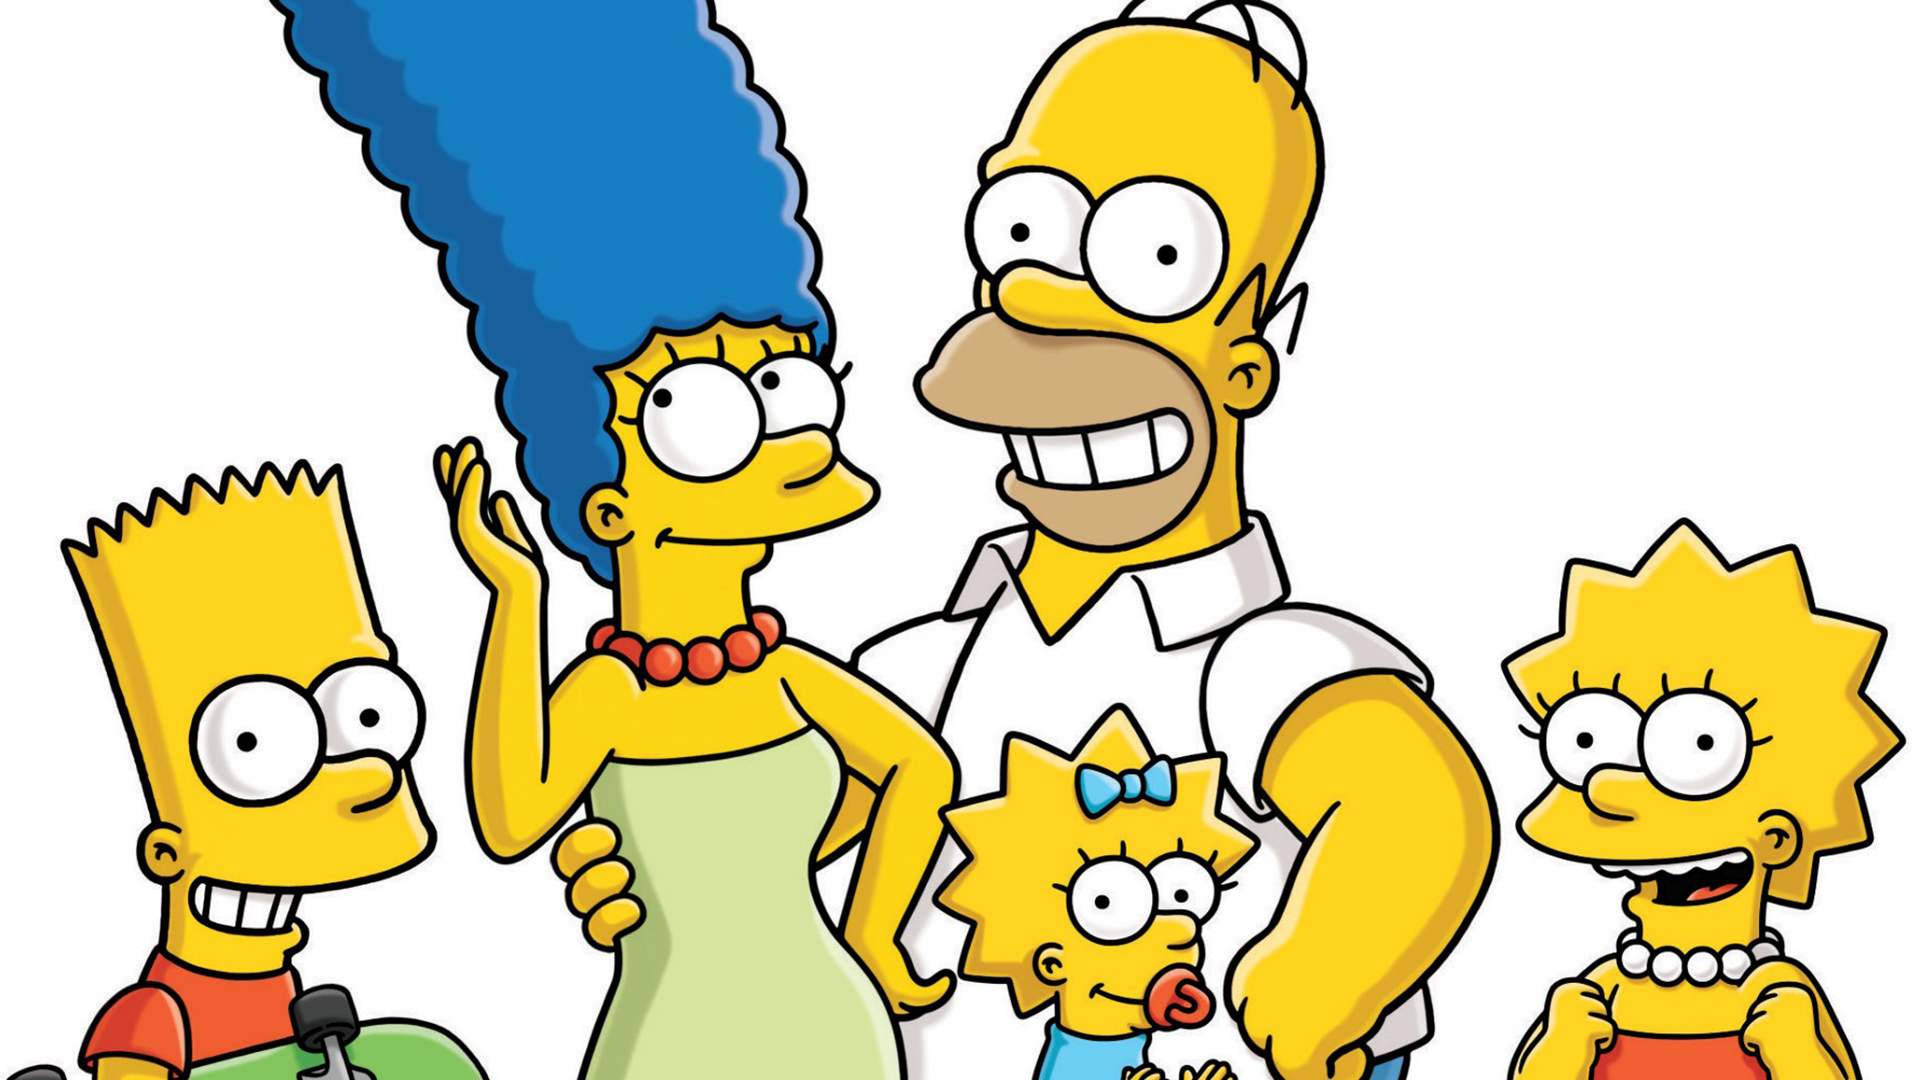 The simpsons hd wallpaper background image 1920x1080 id 779654 wallpaper abyss - Marge simpson et bart ...